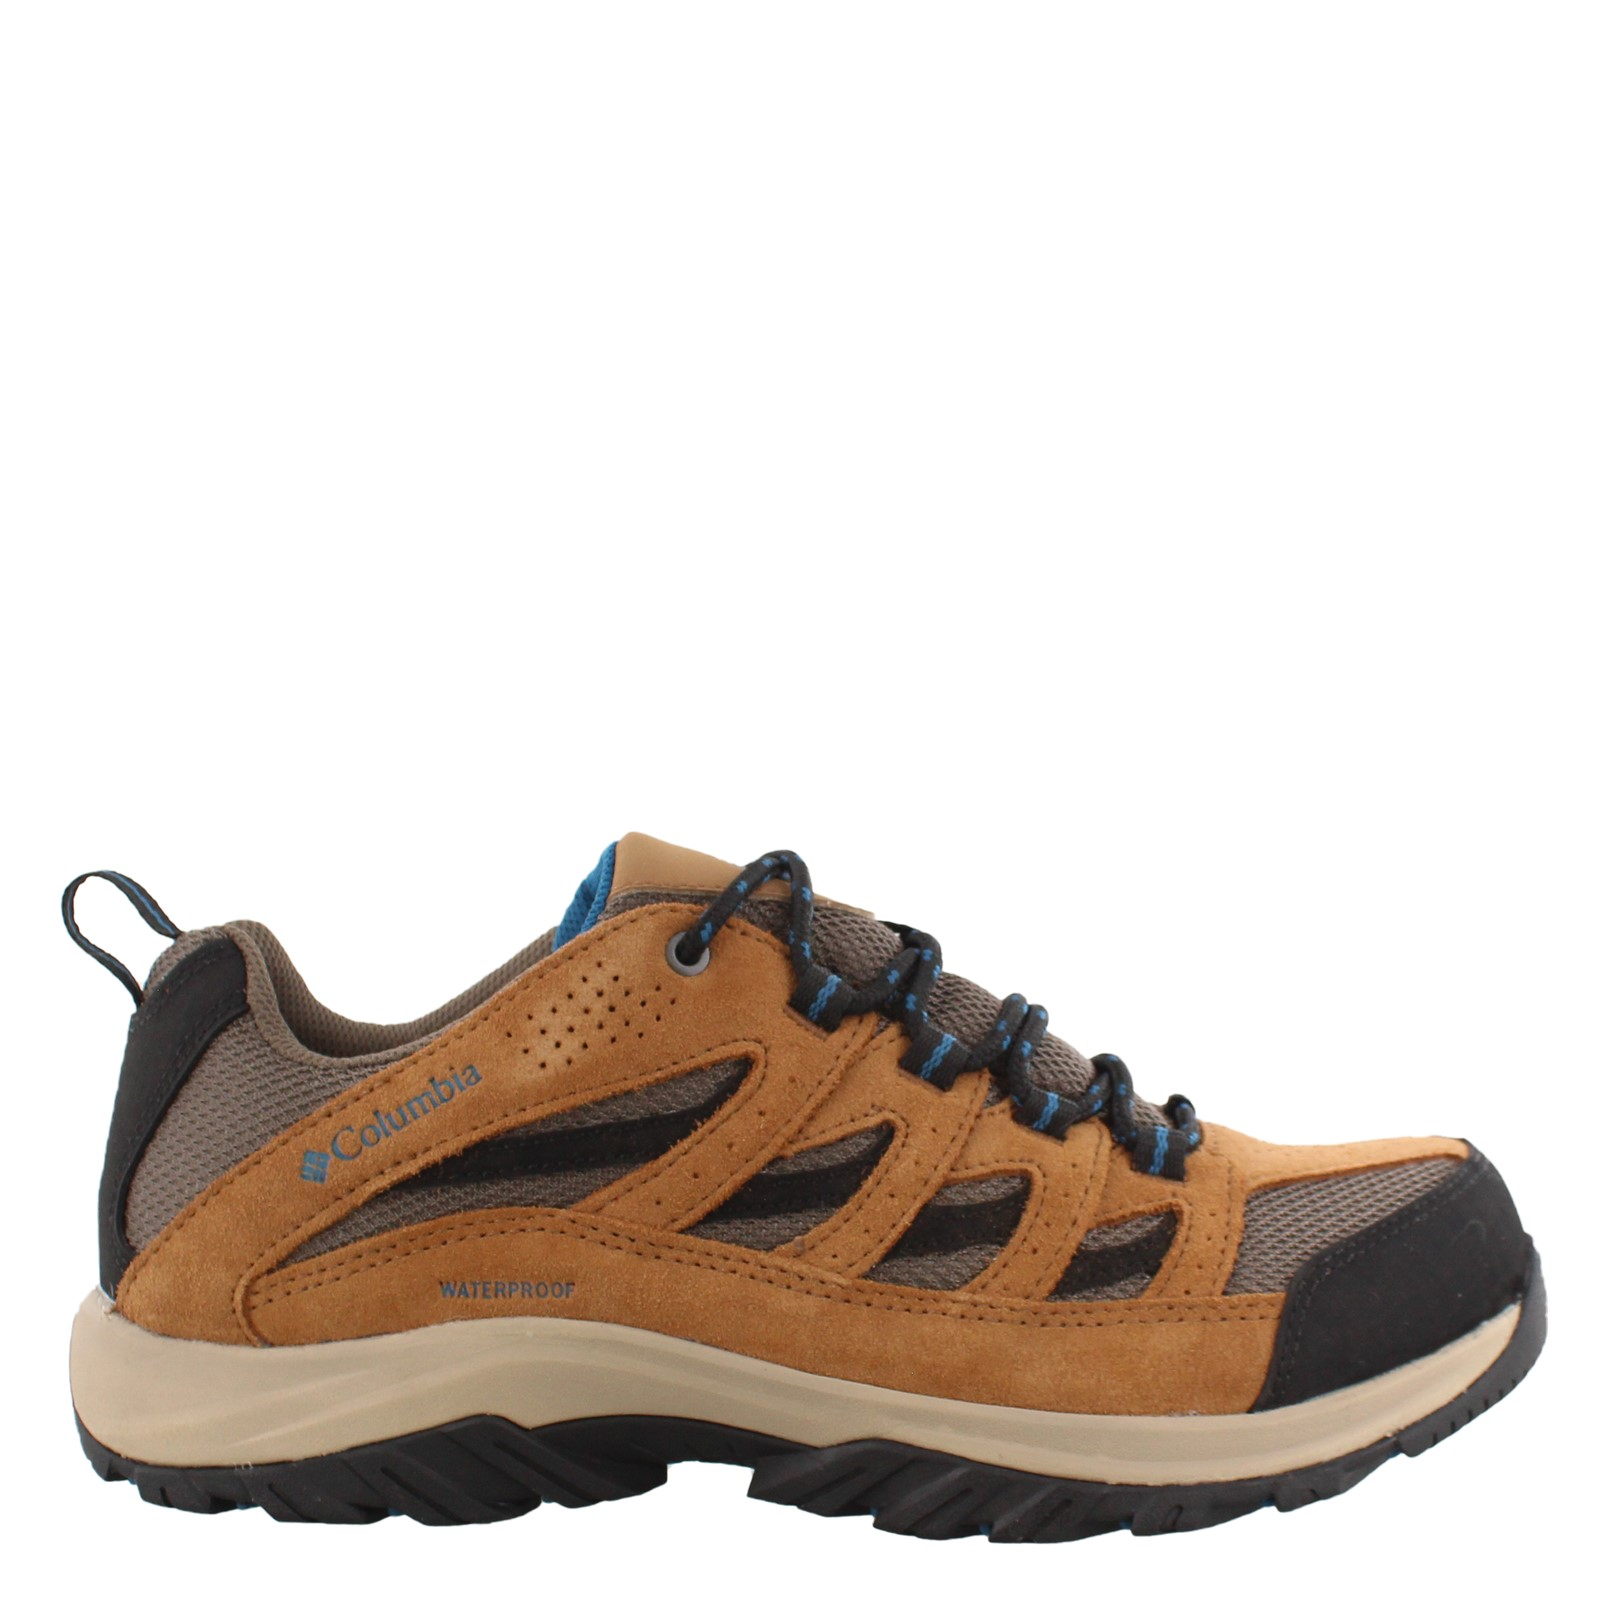 Men's Columbia, Crestwood Waterproof Hiking Shoes